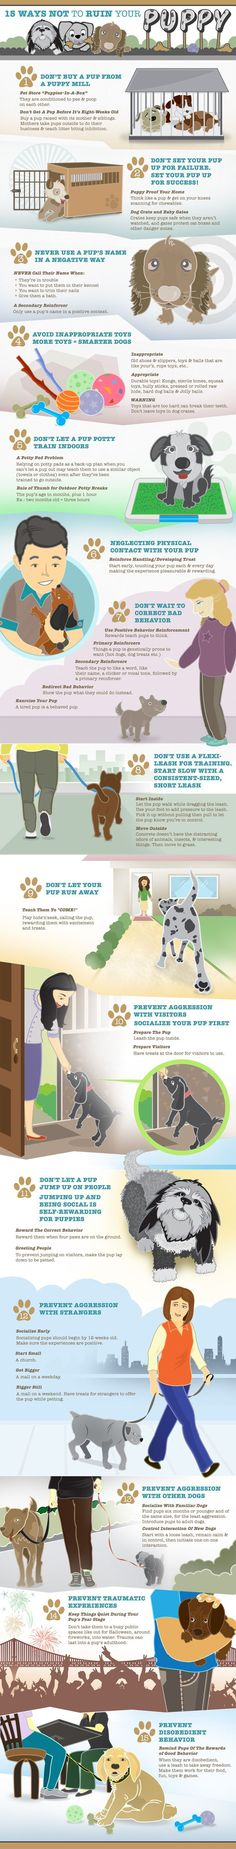 Puppy Training Graphic @KaufmannsPuppy